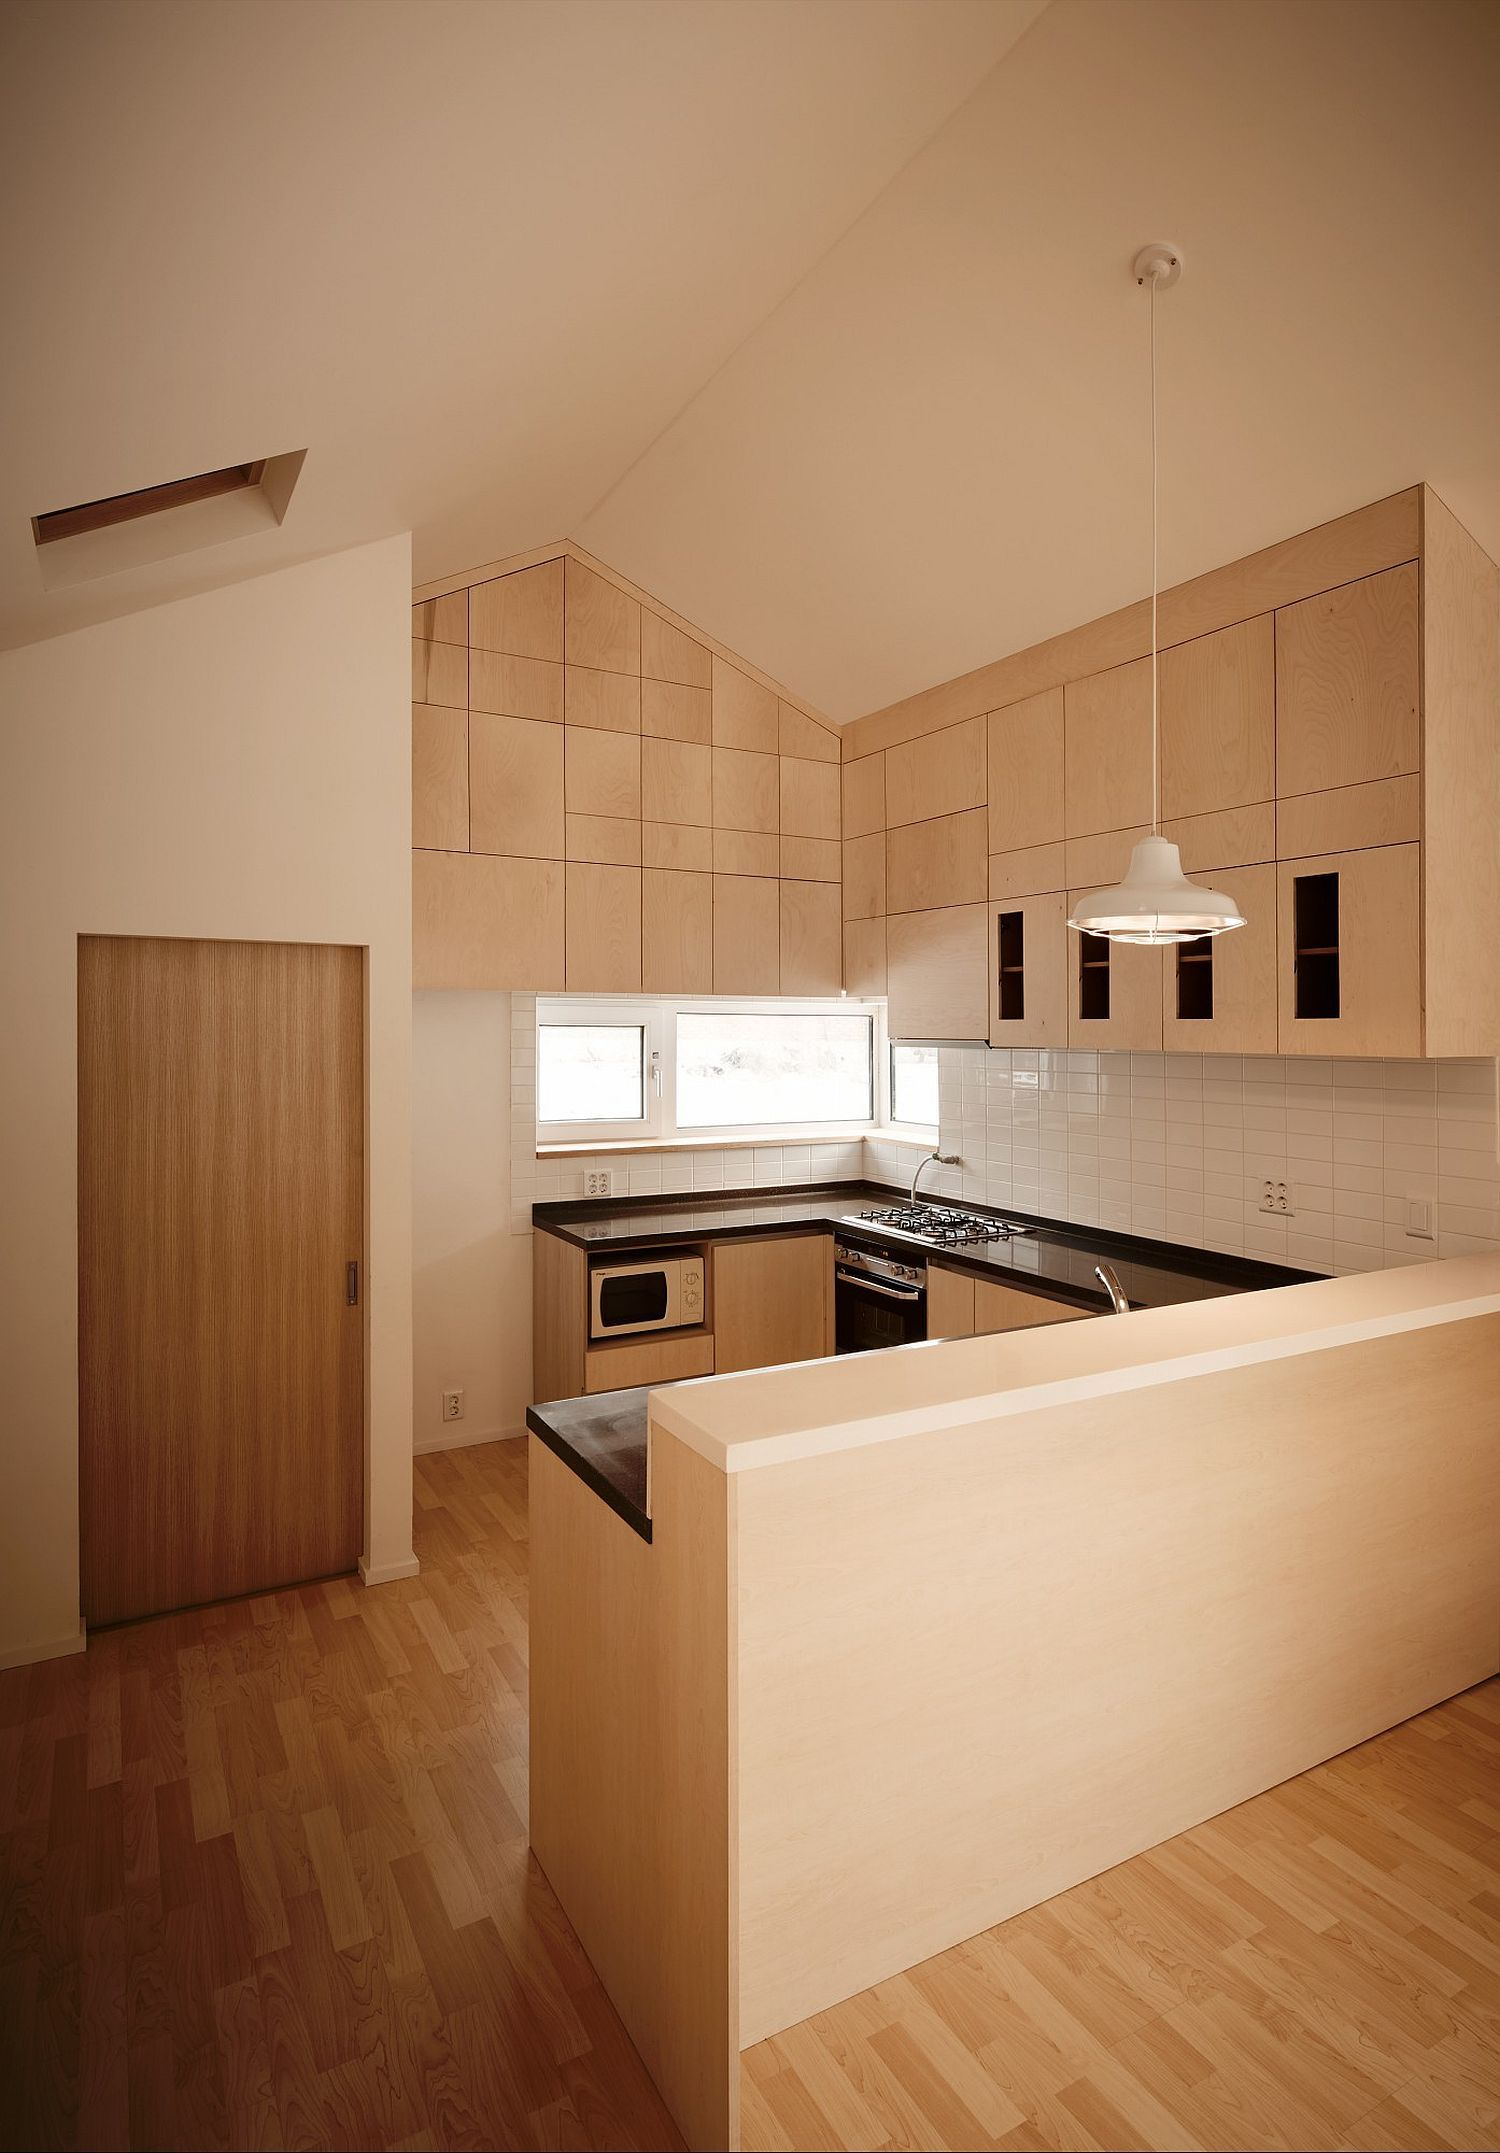 cost effective multi generational home in south korea with modest charm interior design on kitchen decor korea id=77816